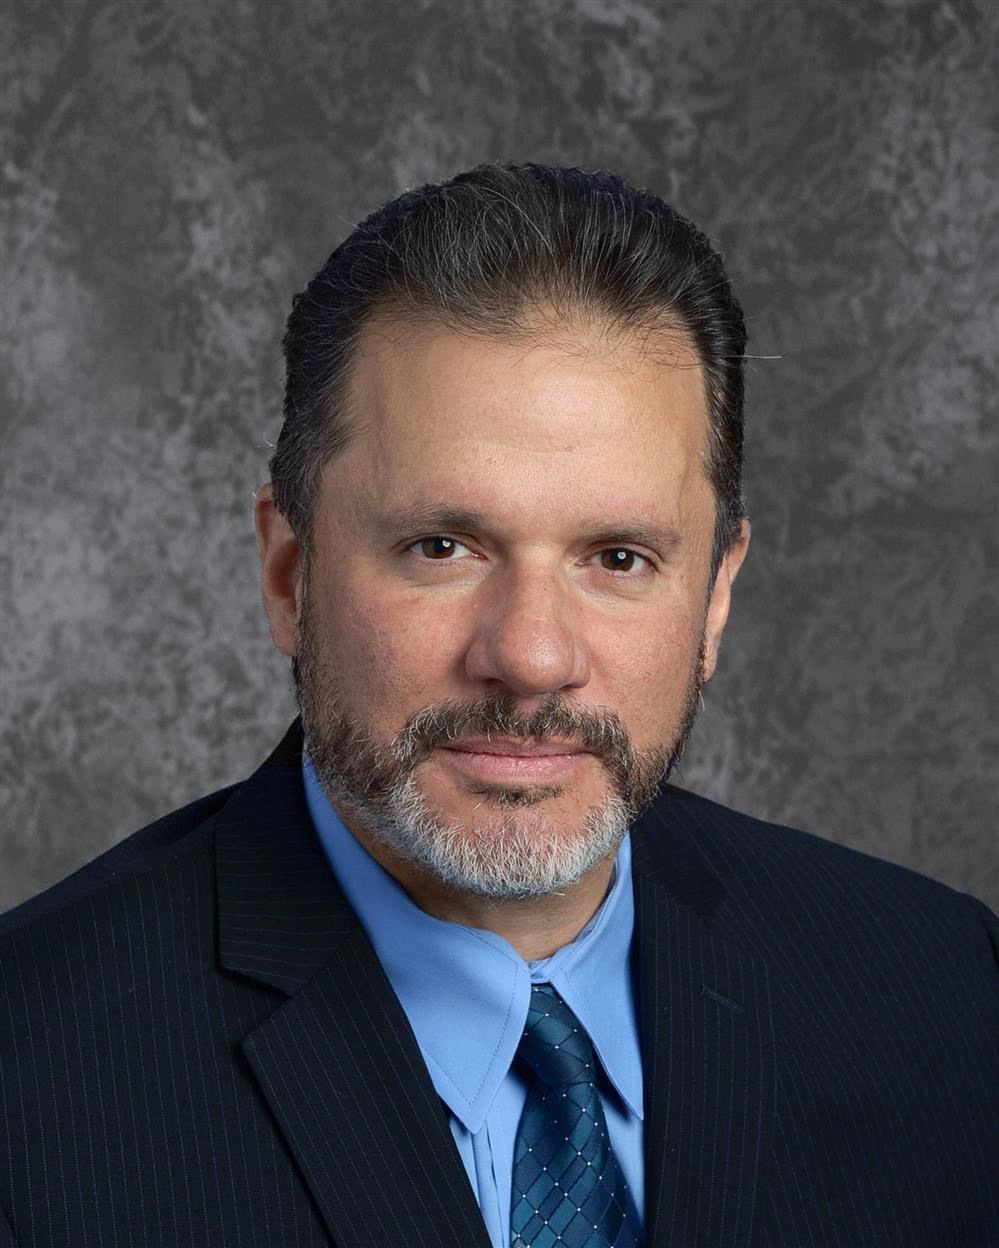 Perth Amboy Schools Superintendent Named Vice President of ESCNJ's Board of Directors